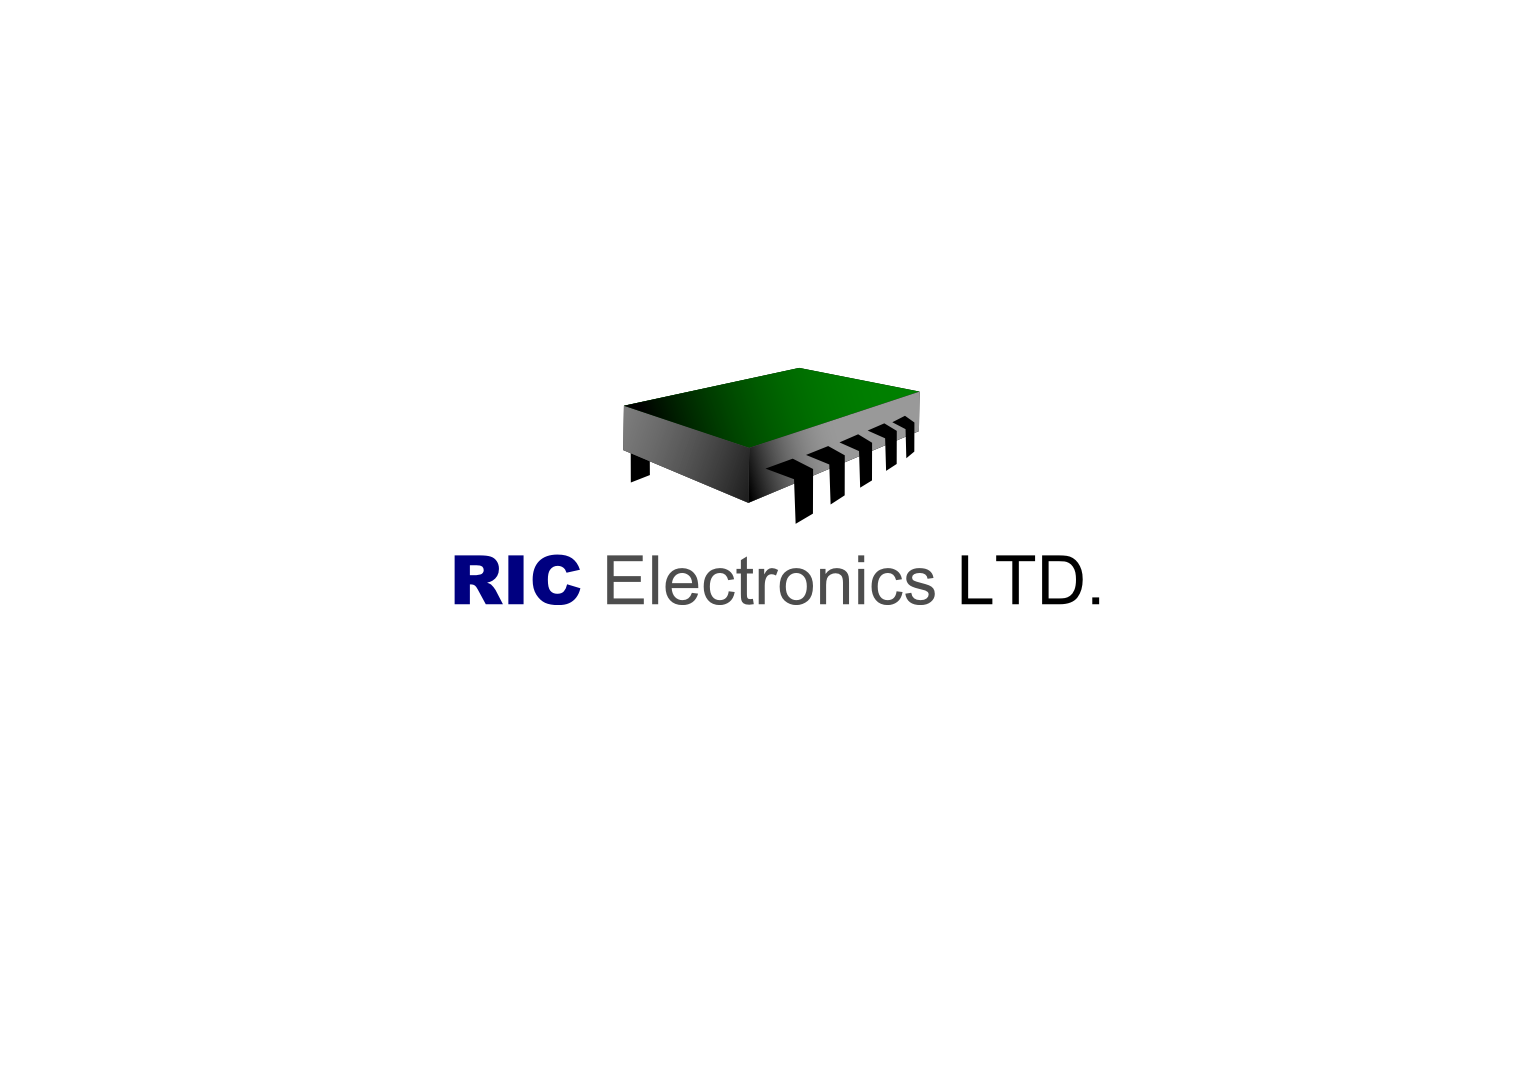 Logo Design by Joseph calunsag Cagaanan - Entry No. 72 in the Logo Design Contest New Logo Design for RIC Electronics Ltd..